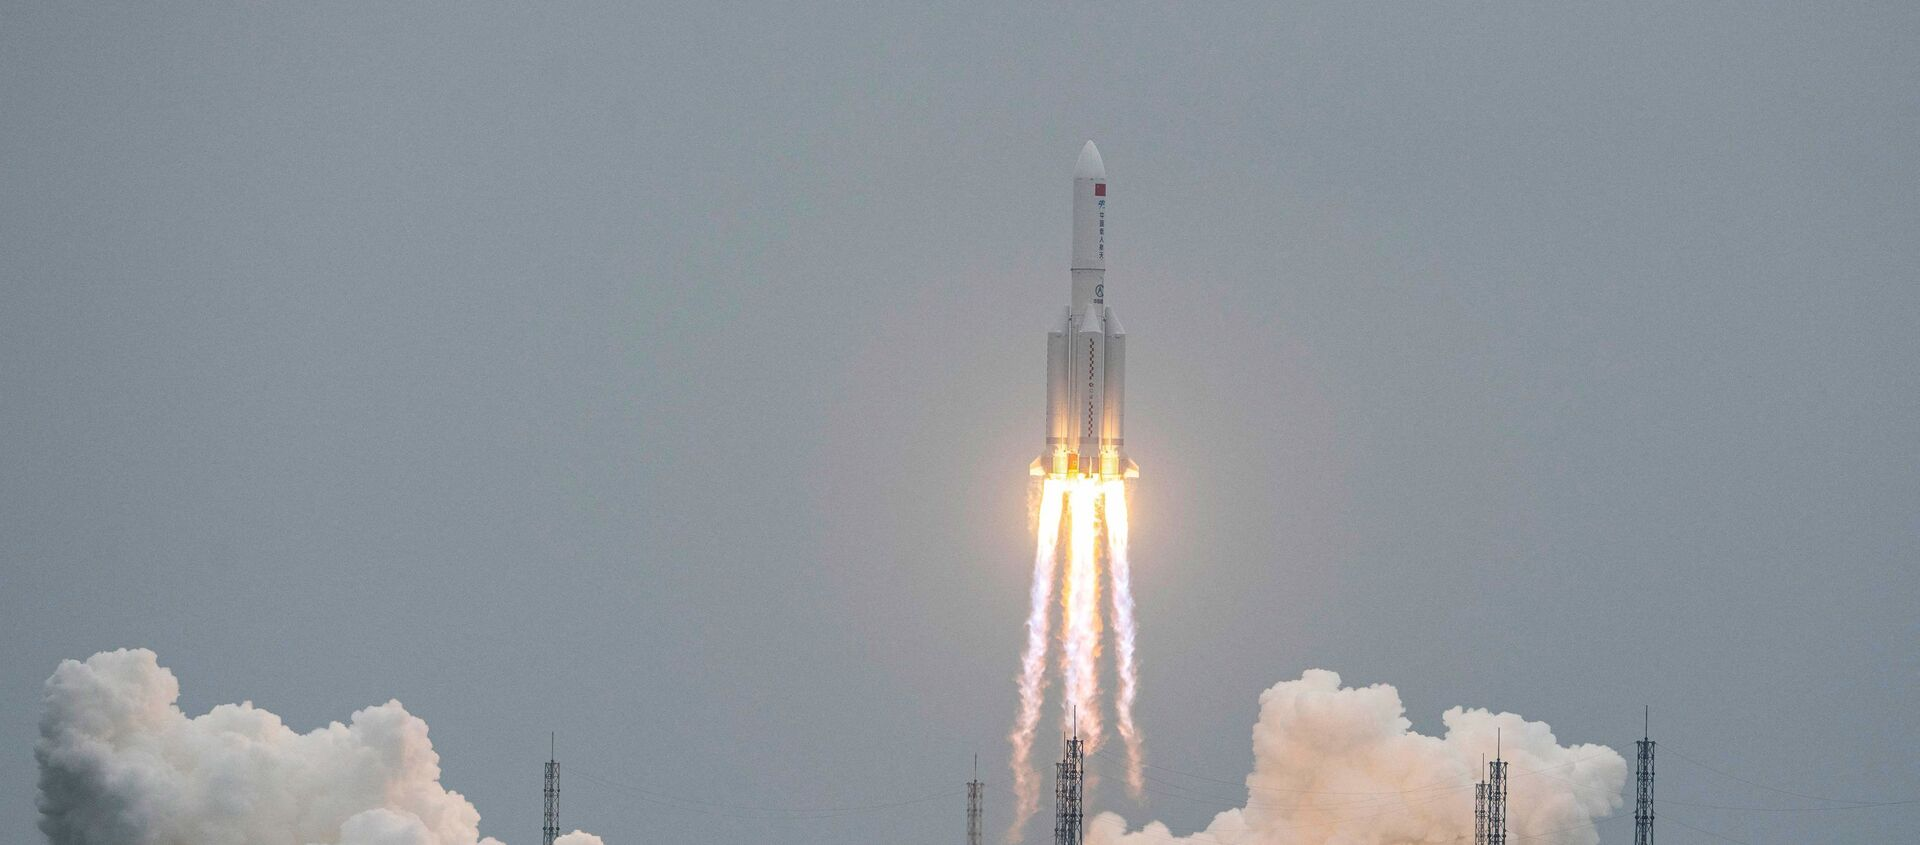 A Long March 5B rocket, carrying China's Tianhe space station core module, lifts off from the Wenchang Space Launch Center in southern China's Hainan province on April 29, 2021.  - Sputnik Italia, 1920, 07.05.2021